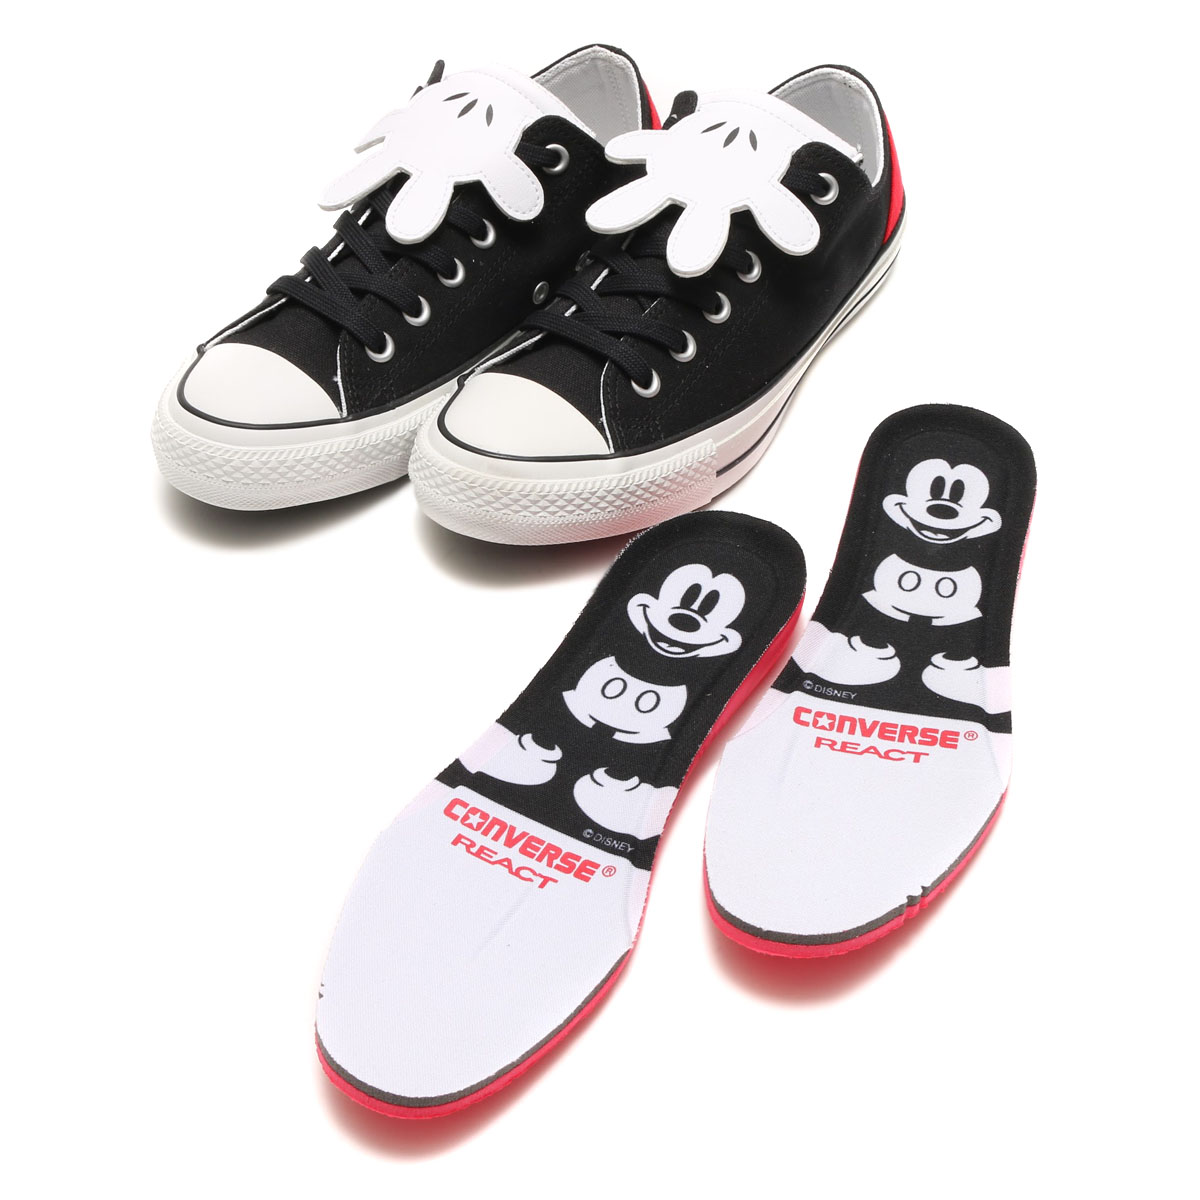 CONVERSE ALL STAR 100 MICKEY MOUSE HD OX (Converse all-stars 100 Mickey Mouse HD Ochs) BLACK 17SP-I